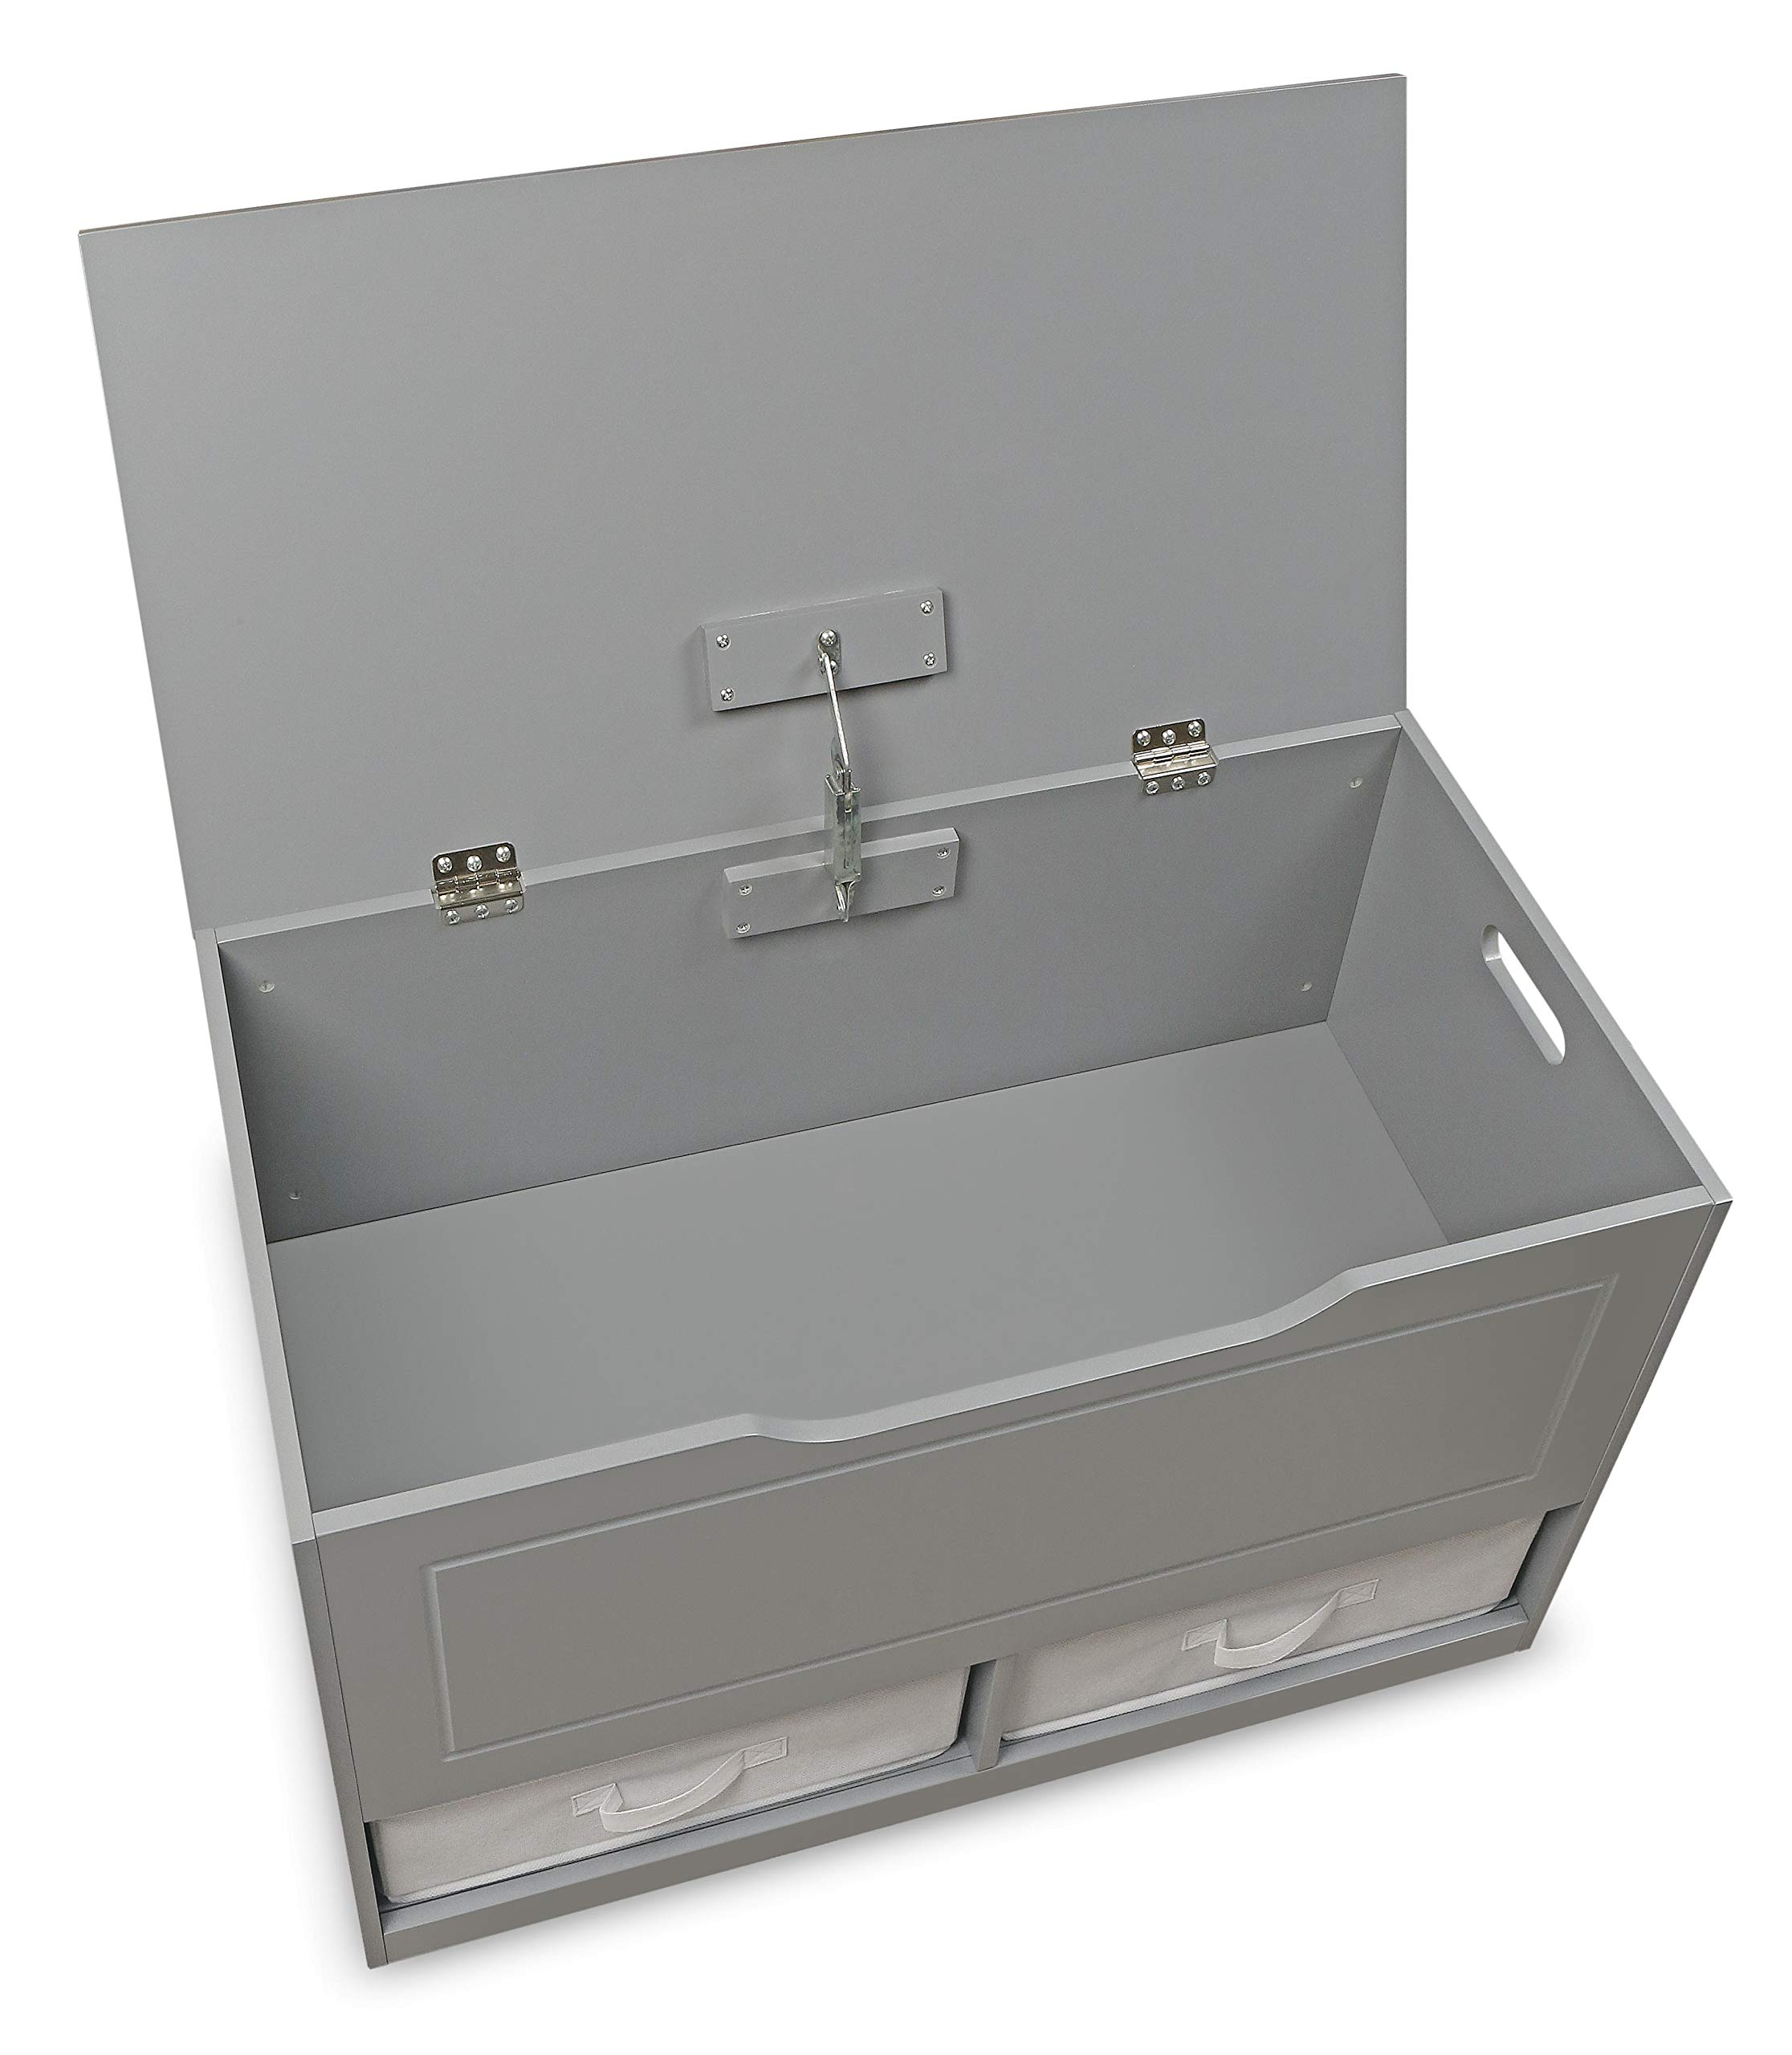 Badger Basket Up and Down Toy and Storage Box with 2 Basket Drawers, Gray/White by Badger Basket (Image #7)